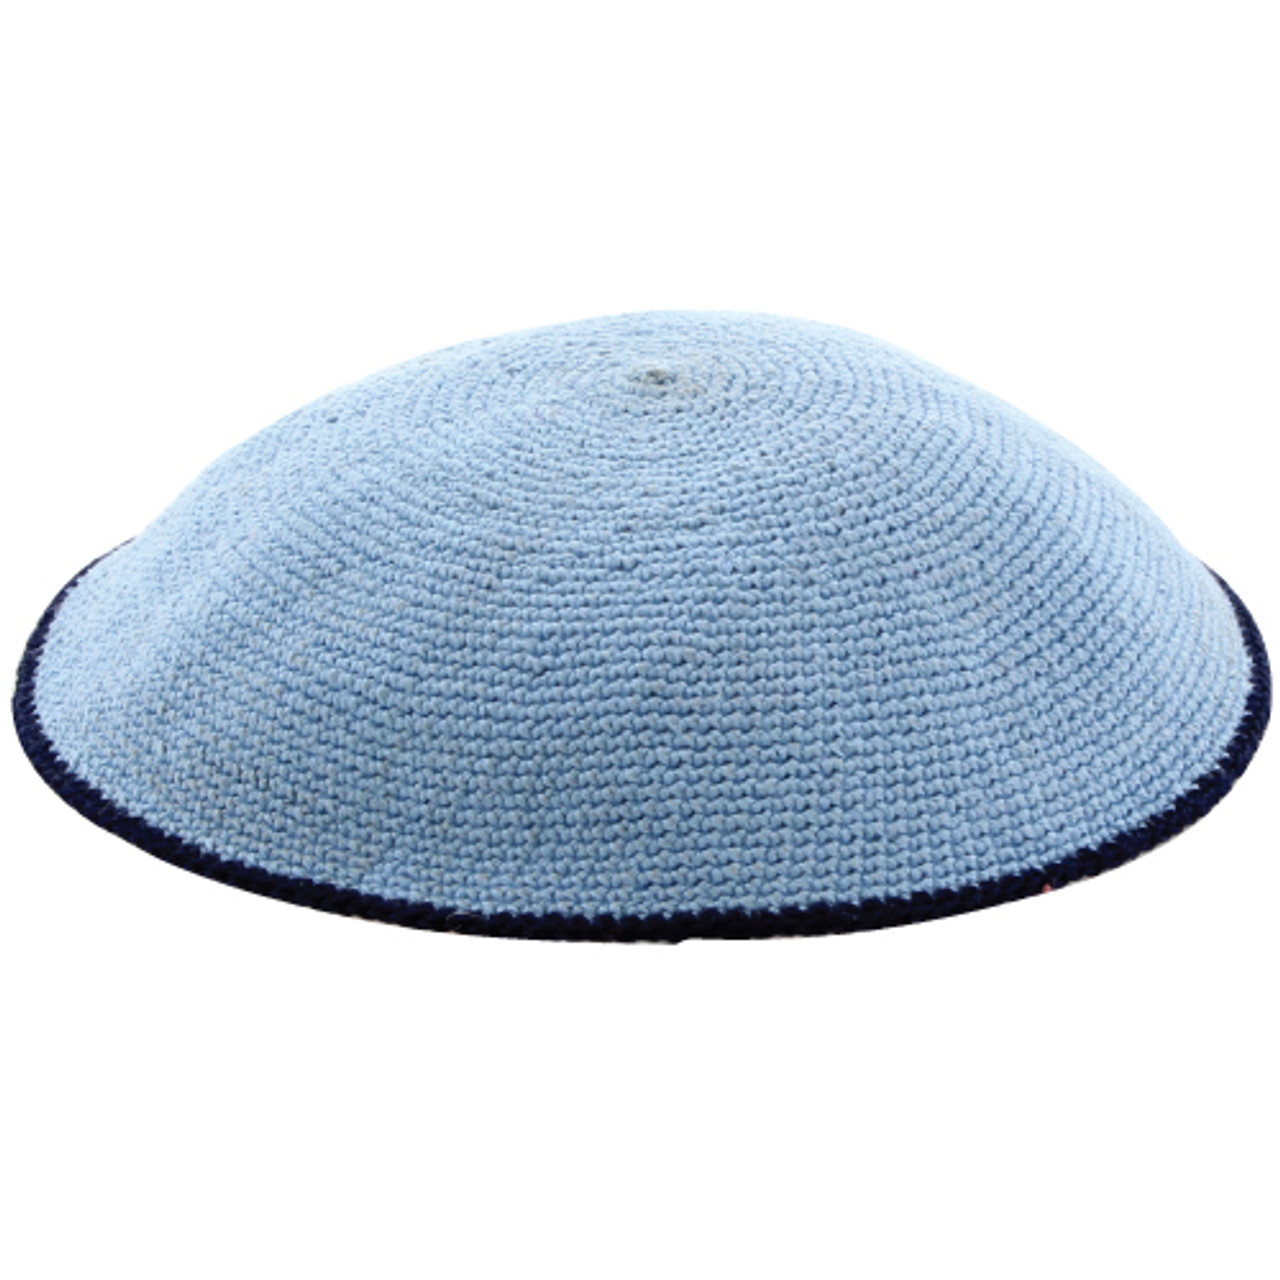 Sky Blue DMC Knitted Kippah with Dark Trim